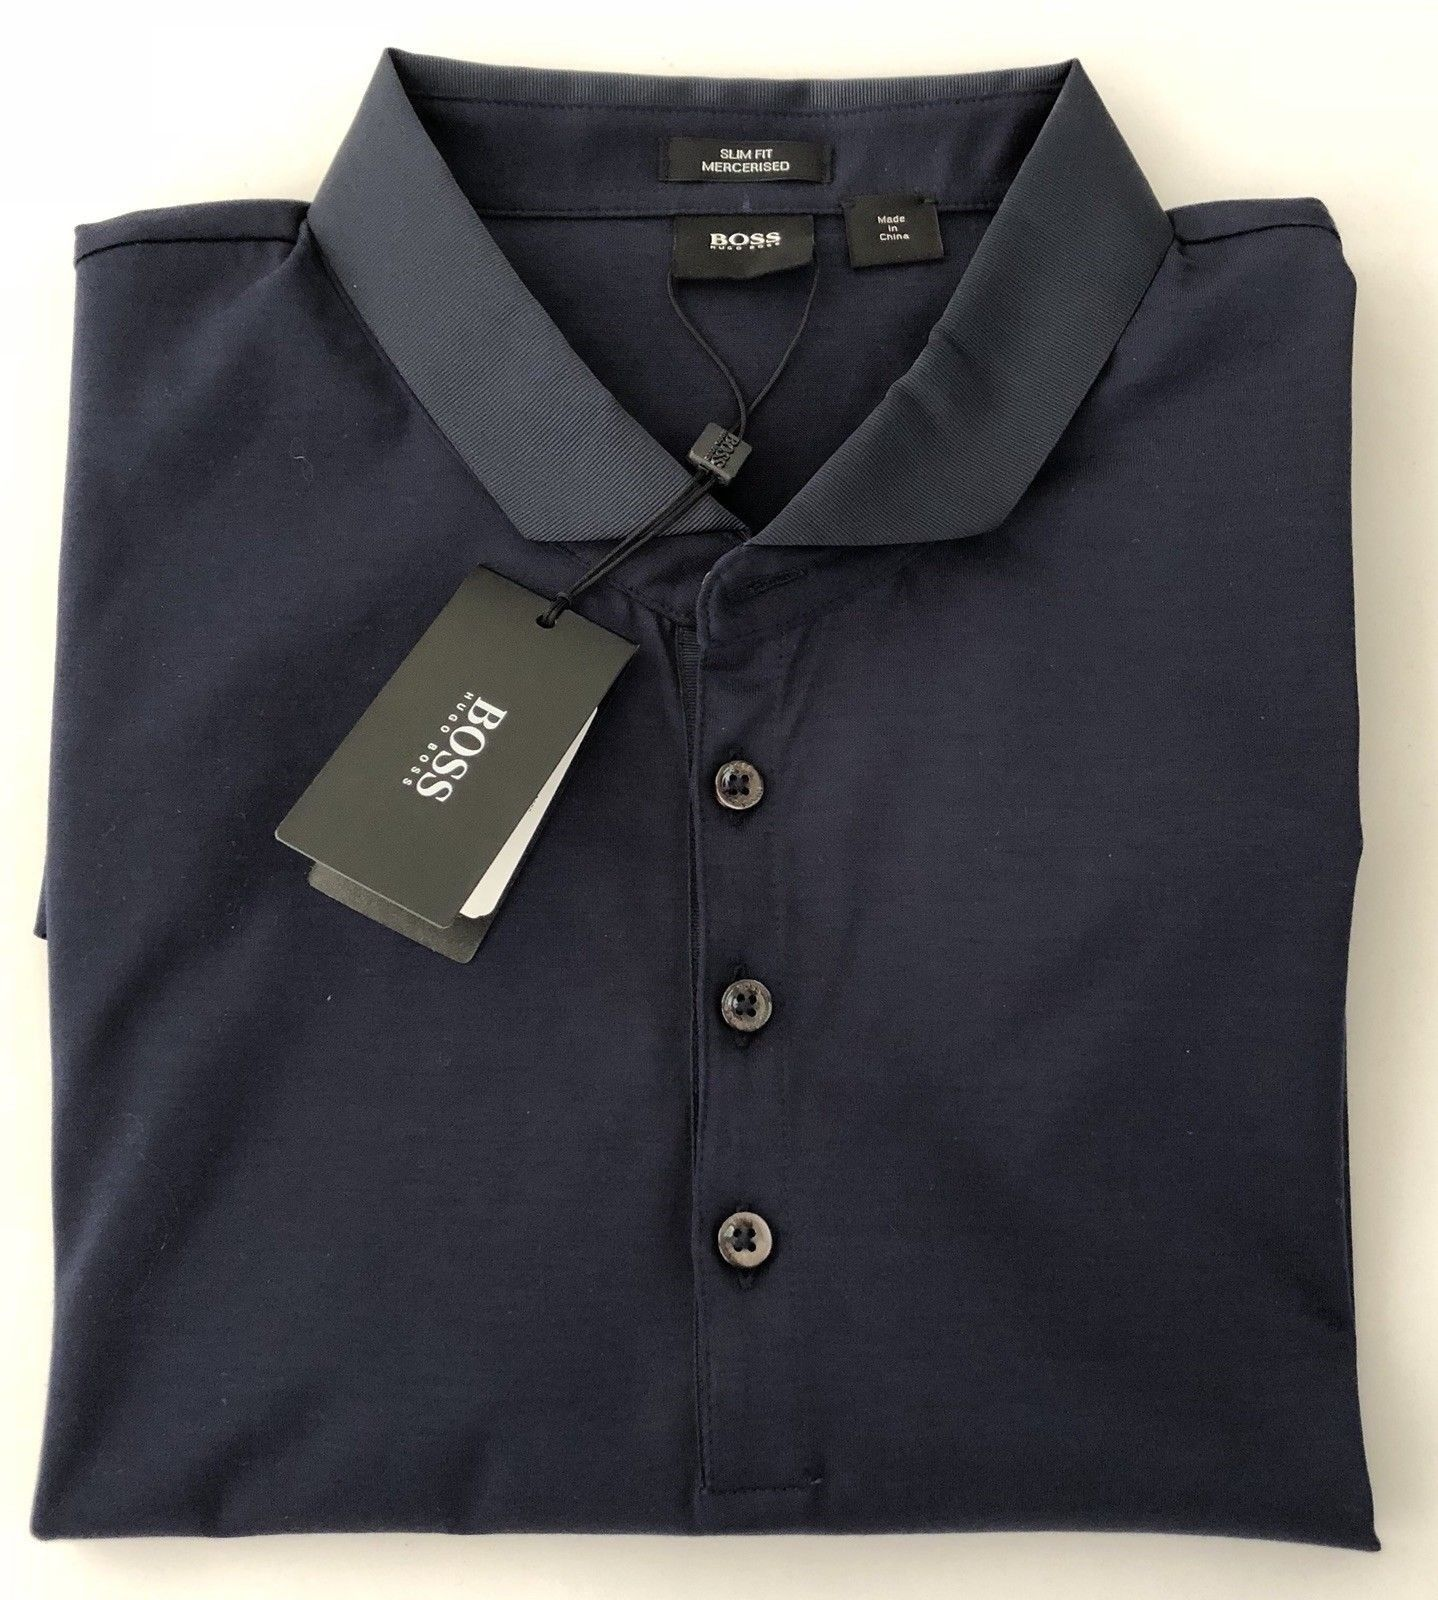 f6a503246 Hugo Boss Polo Shirts From China | Top Mode Depot